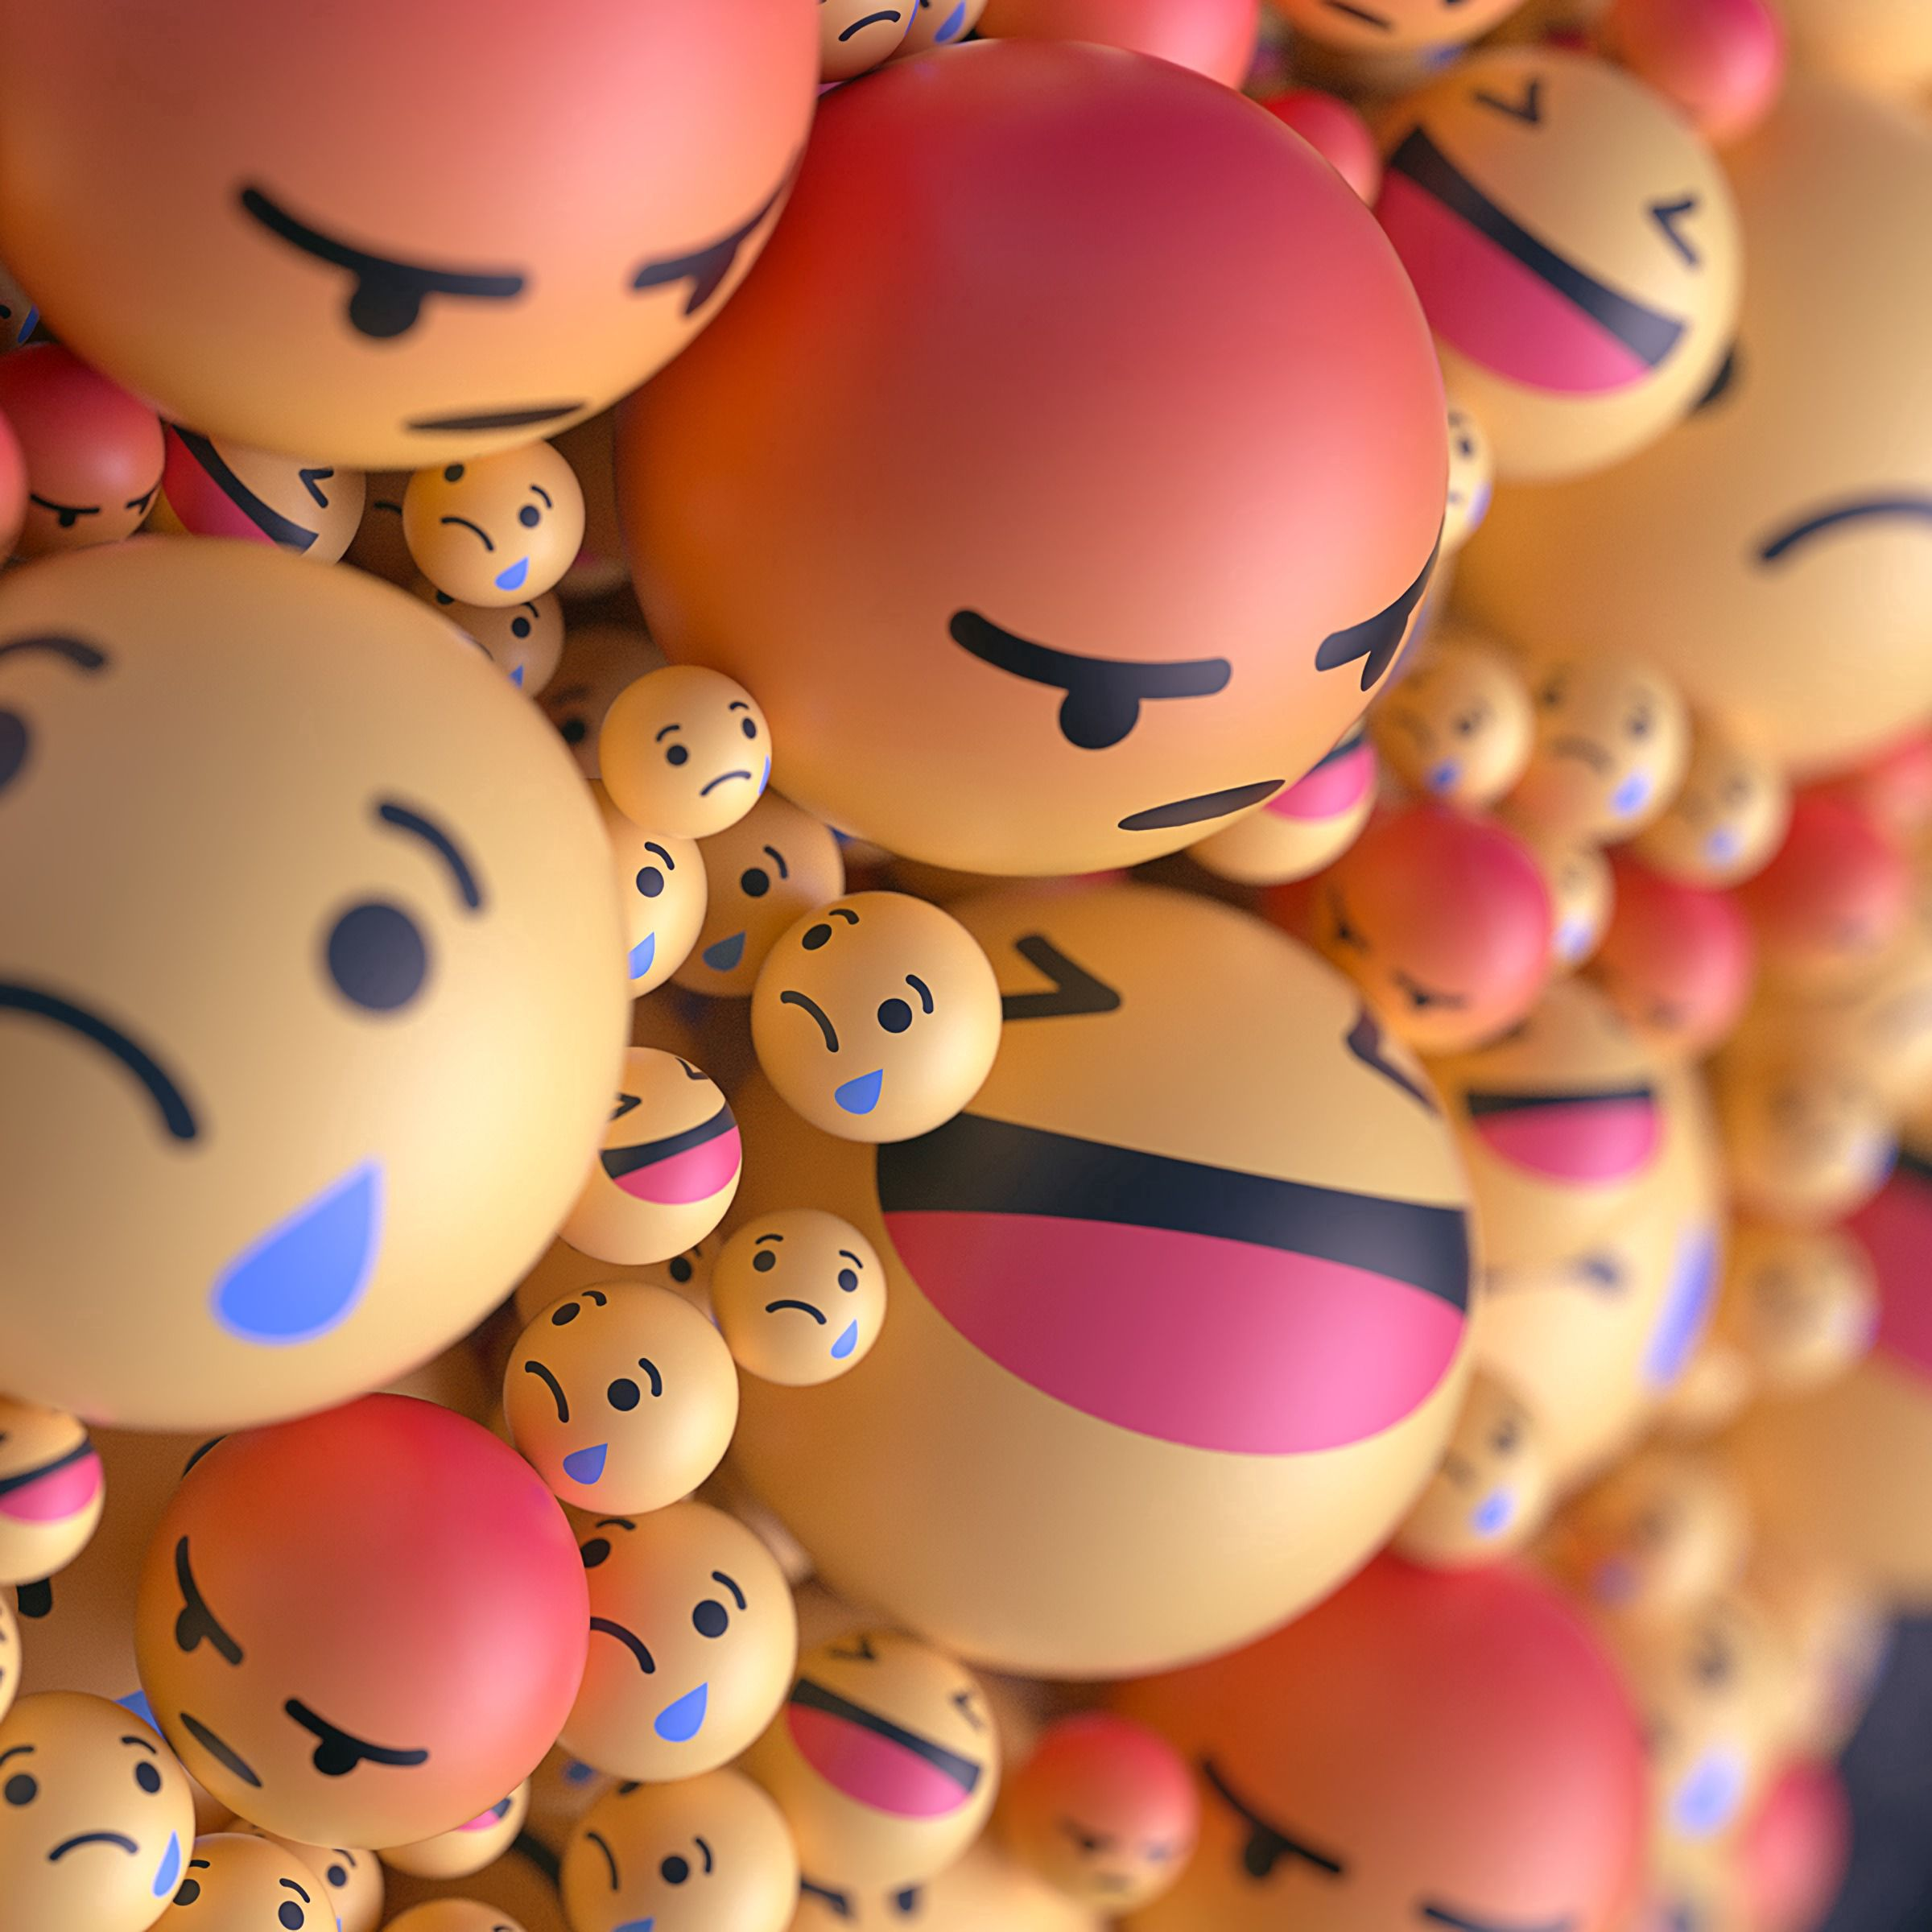 Free wallpaper 122710: Smilies, Smiles, Emoticons, Smileys, Balloons, Taw, 3D, Emotions download pictures for cellphone